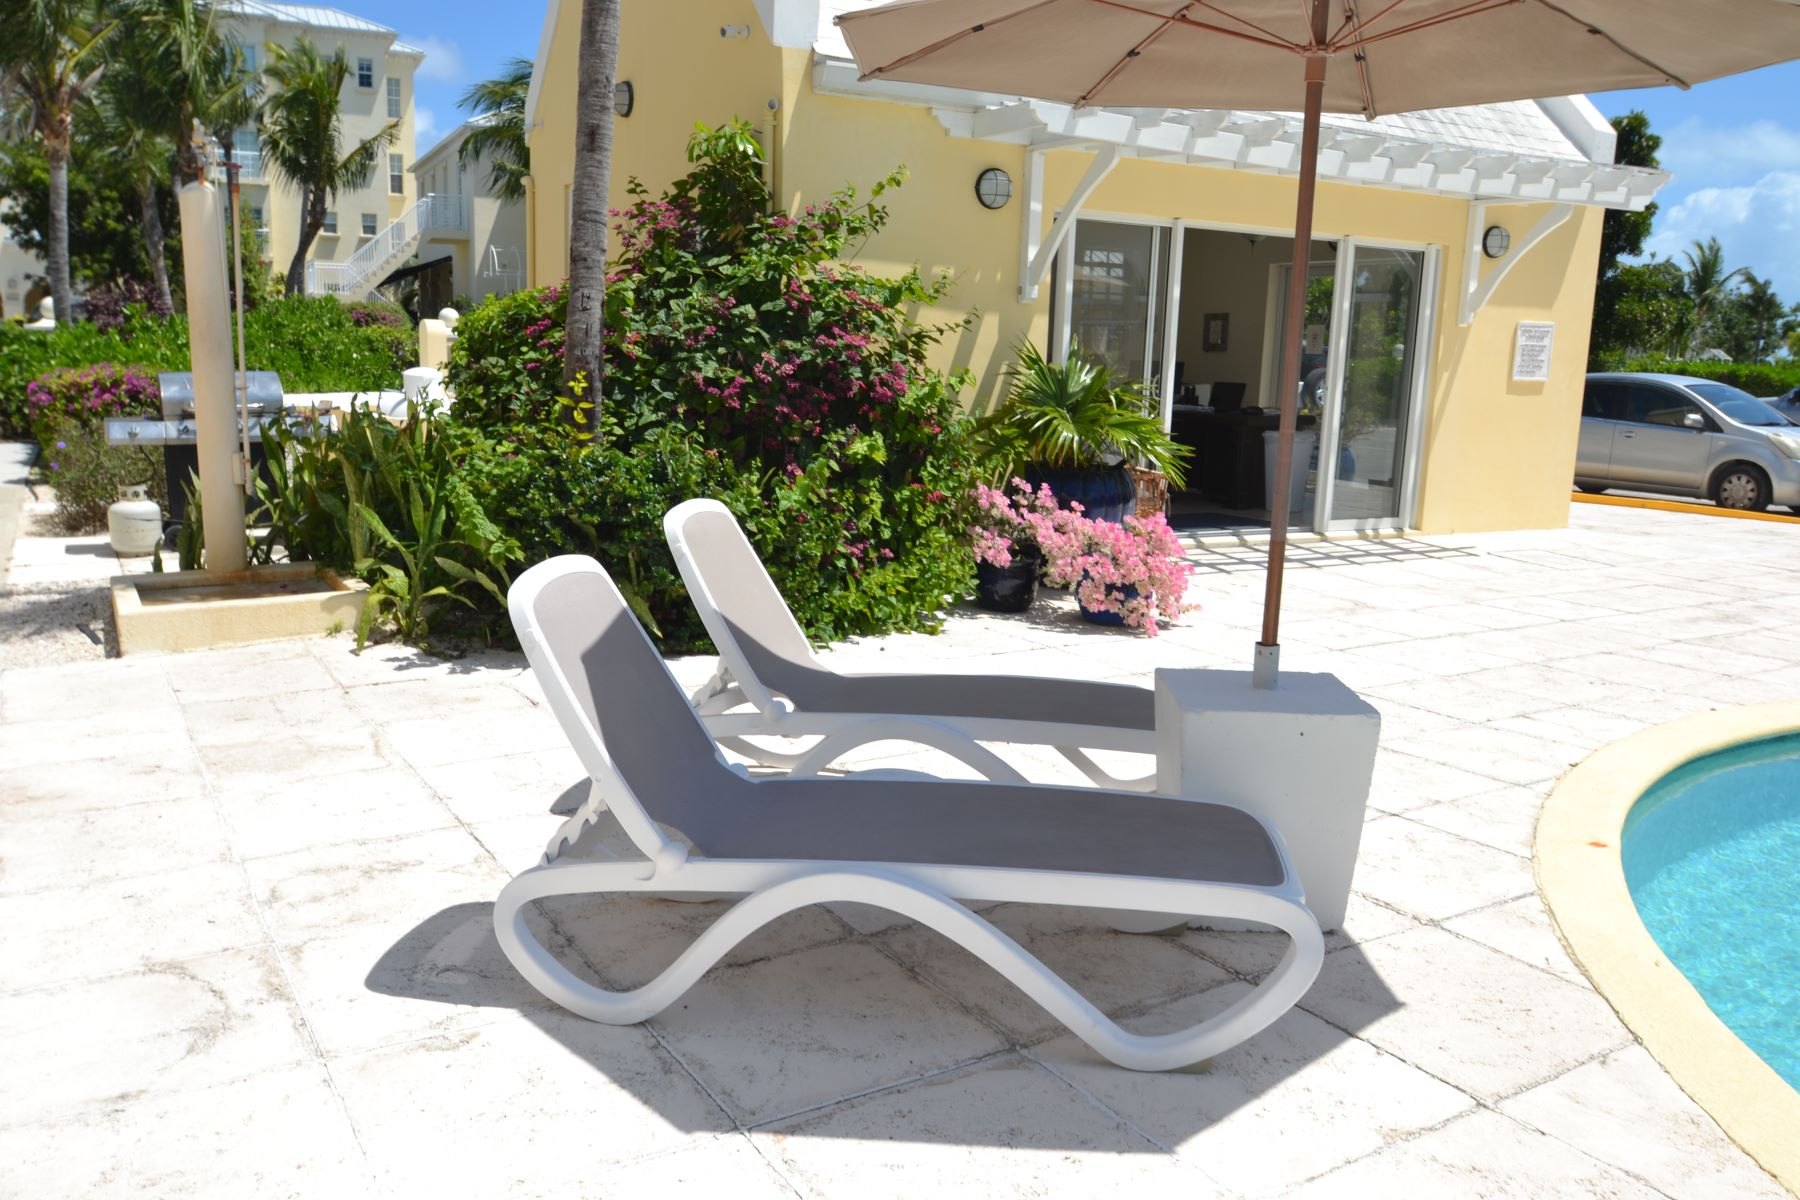 Additional photo for property listing at Reef Residences Reef Residences Grace Bay, Провиденсьялес TKCA 1ZZ Теркс И Кайкос